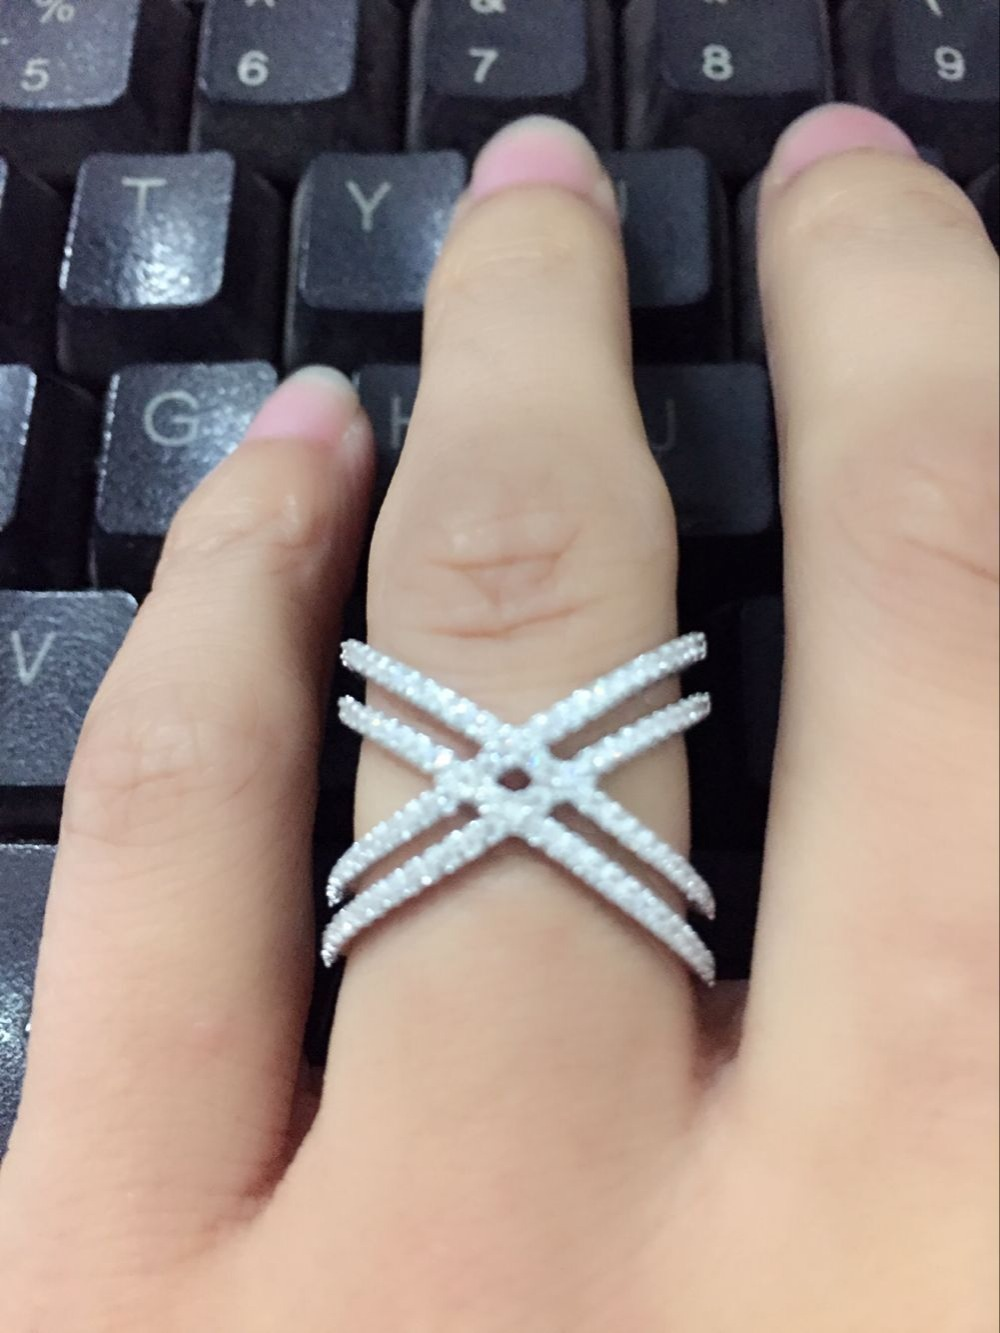 Genuine 925 Sterling silver size 6,7,8,9 micro pave cz double Criss cross X ring for wedding women finger jewelry